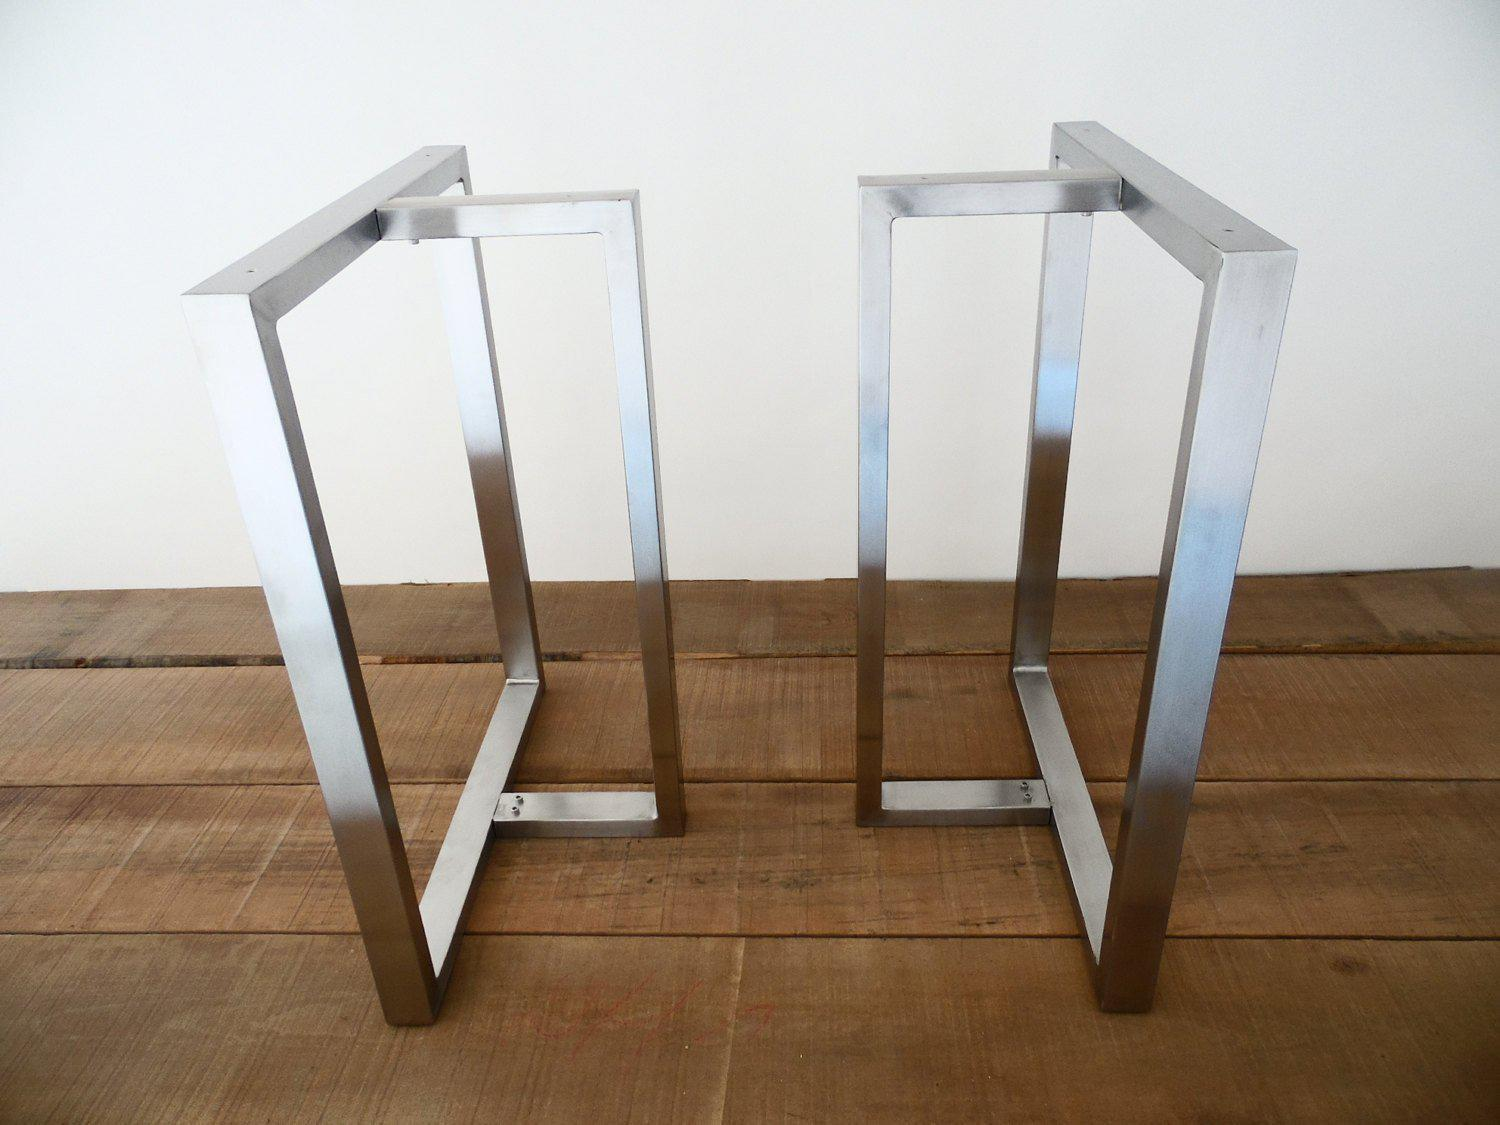 Stupendous Best Modern Metal Dining Table Legs Balasagun Made To Order Home Interior And Landscaping Ponolsignezvosmurscom